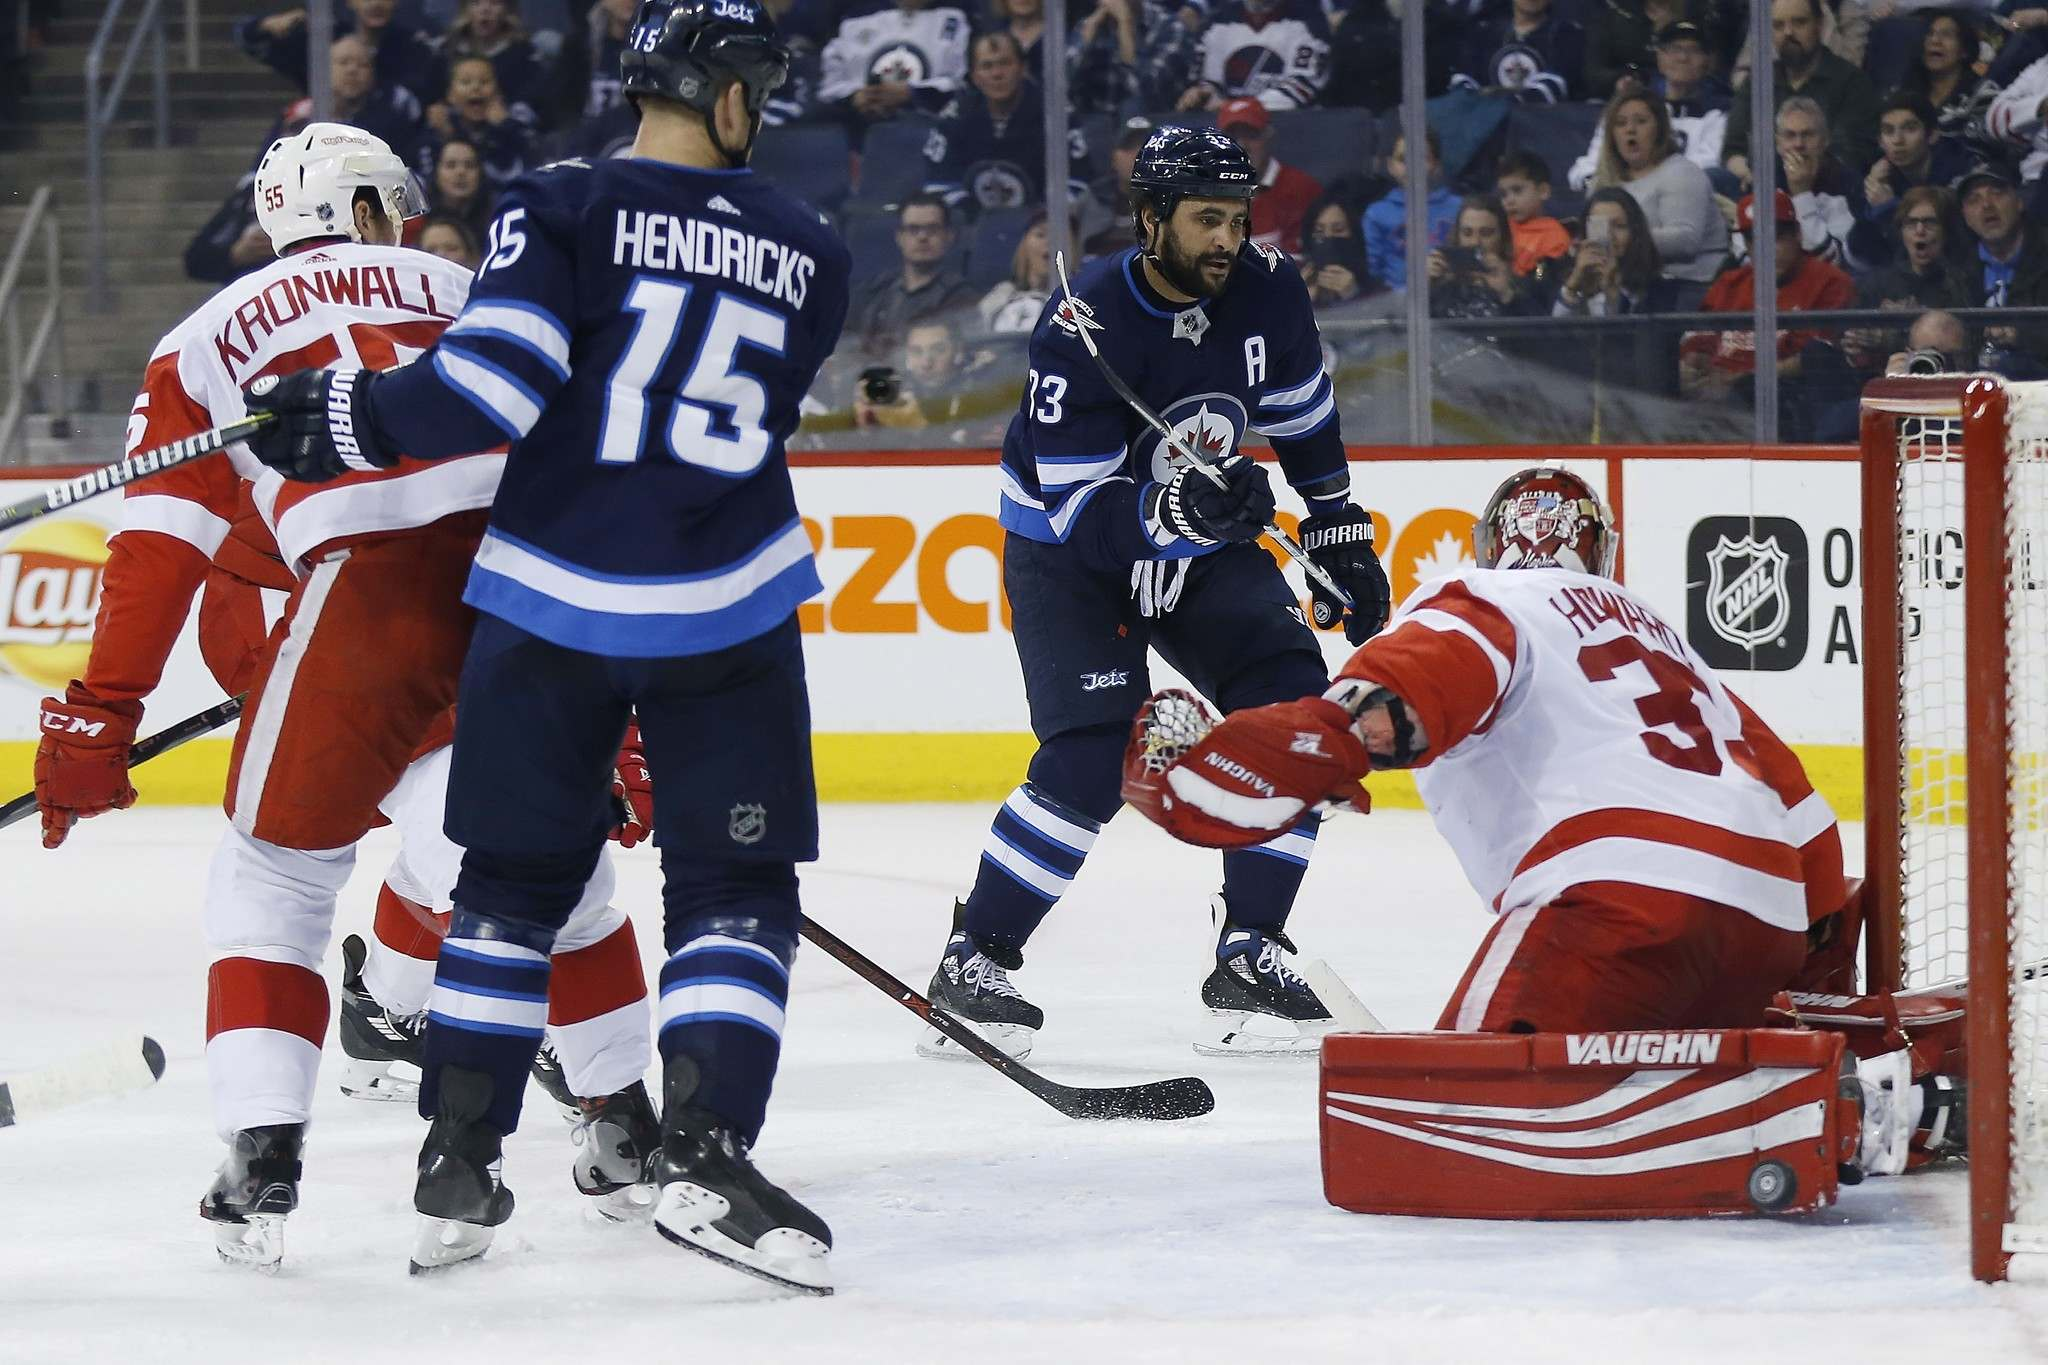 THE CANADIAN PRESS/John Woods</p><p>Winnipeg Jets' Dustin Byfuglien scores on Detroit Red Wings Jimmy Howard as Jets' Matt Hendricks and Red Wings' Niklas Kronwall look on during second period Friday. </p>